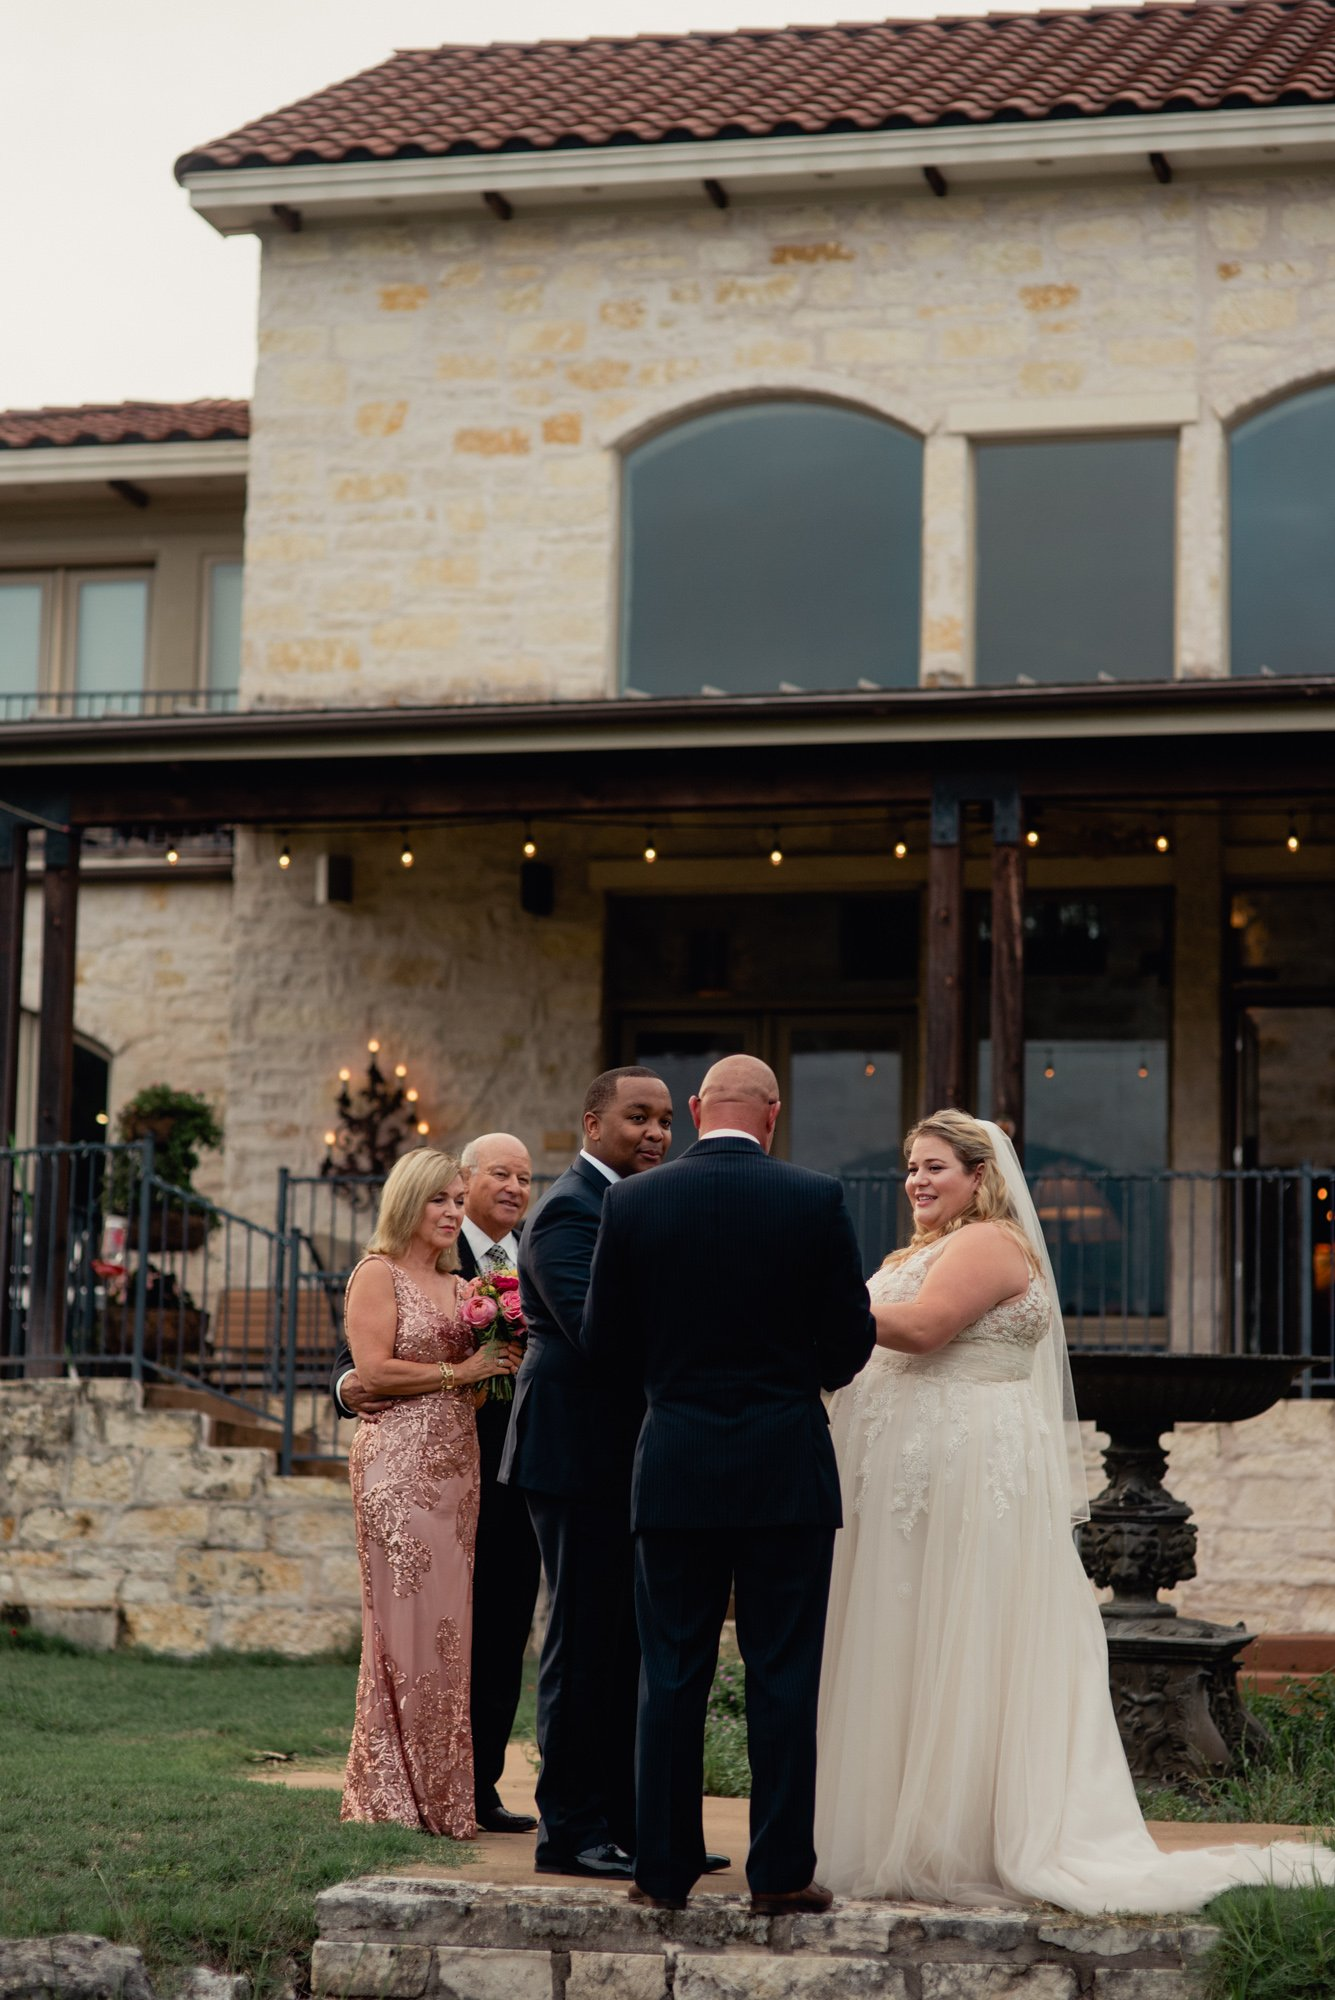 austin lake house elopement photos, austin small wedding photographer, small lake house wedding austin texas, austin elopement photography